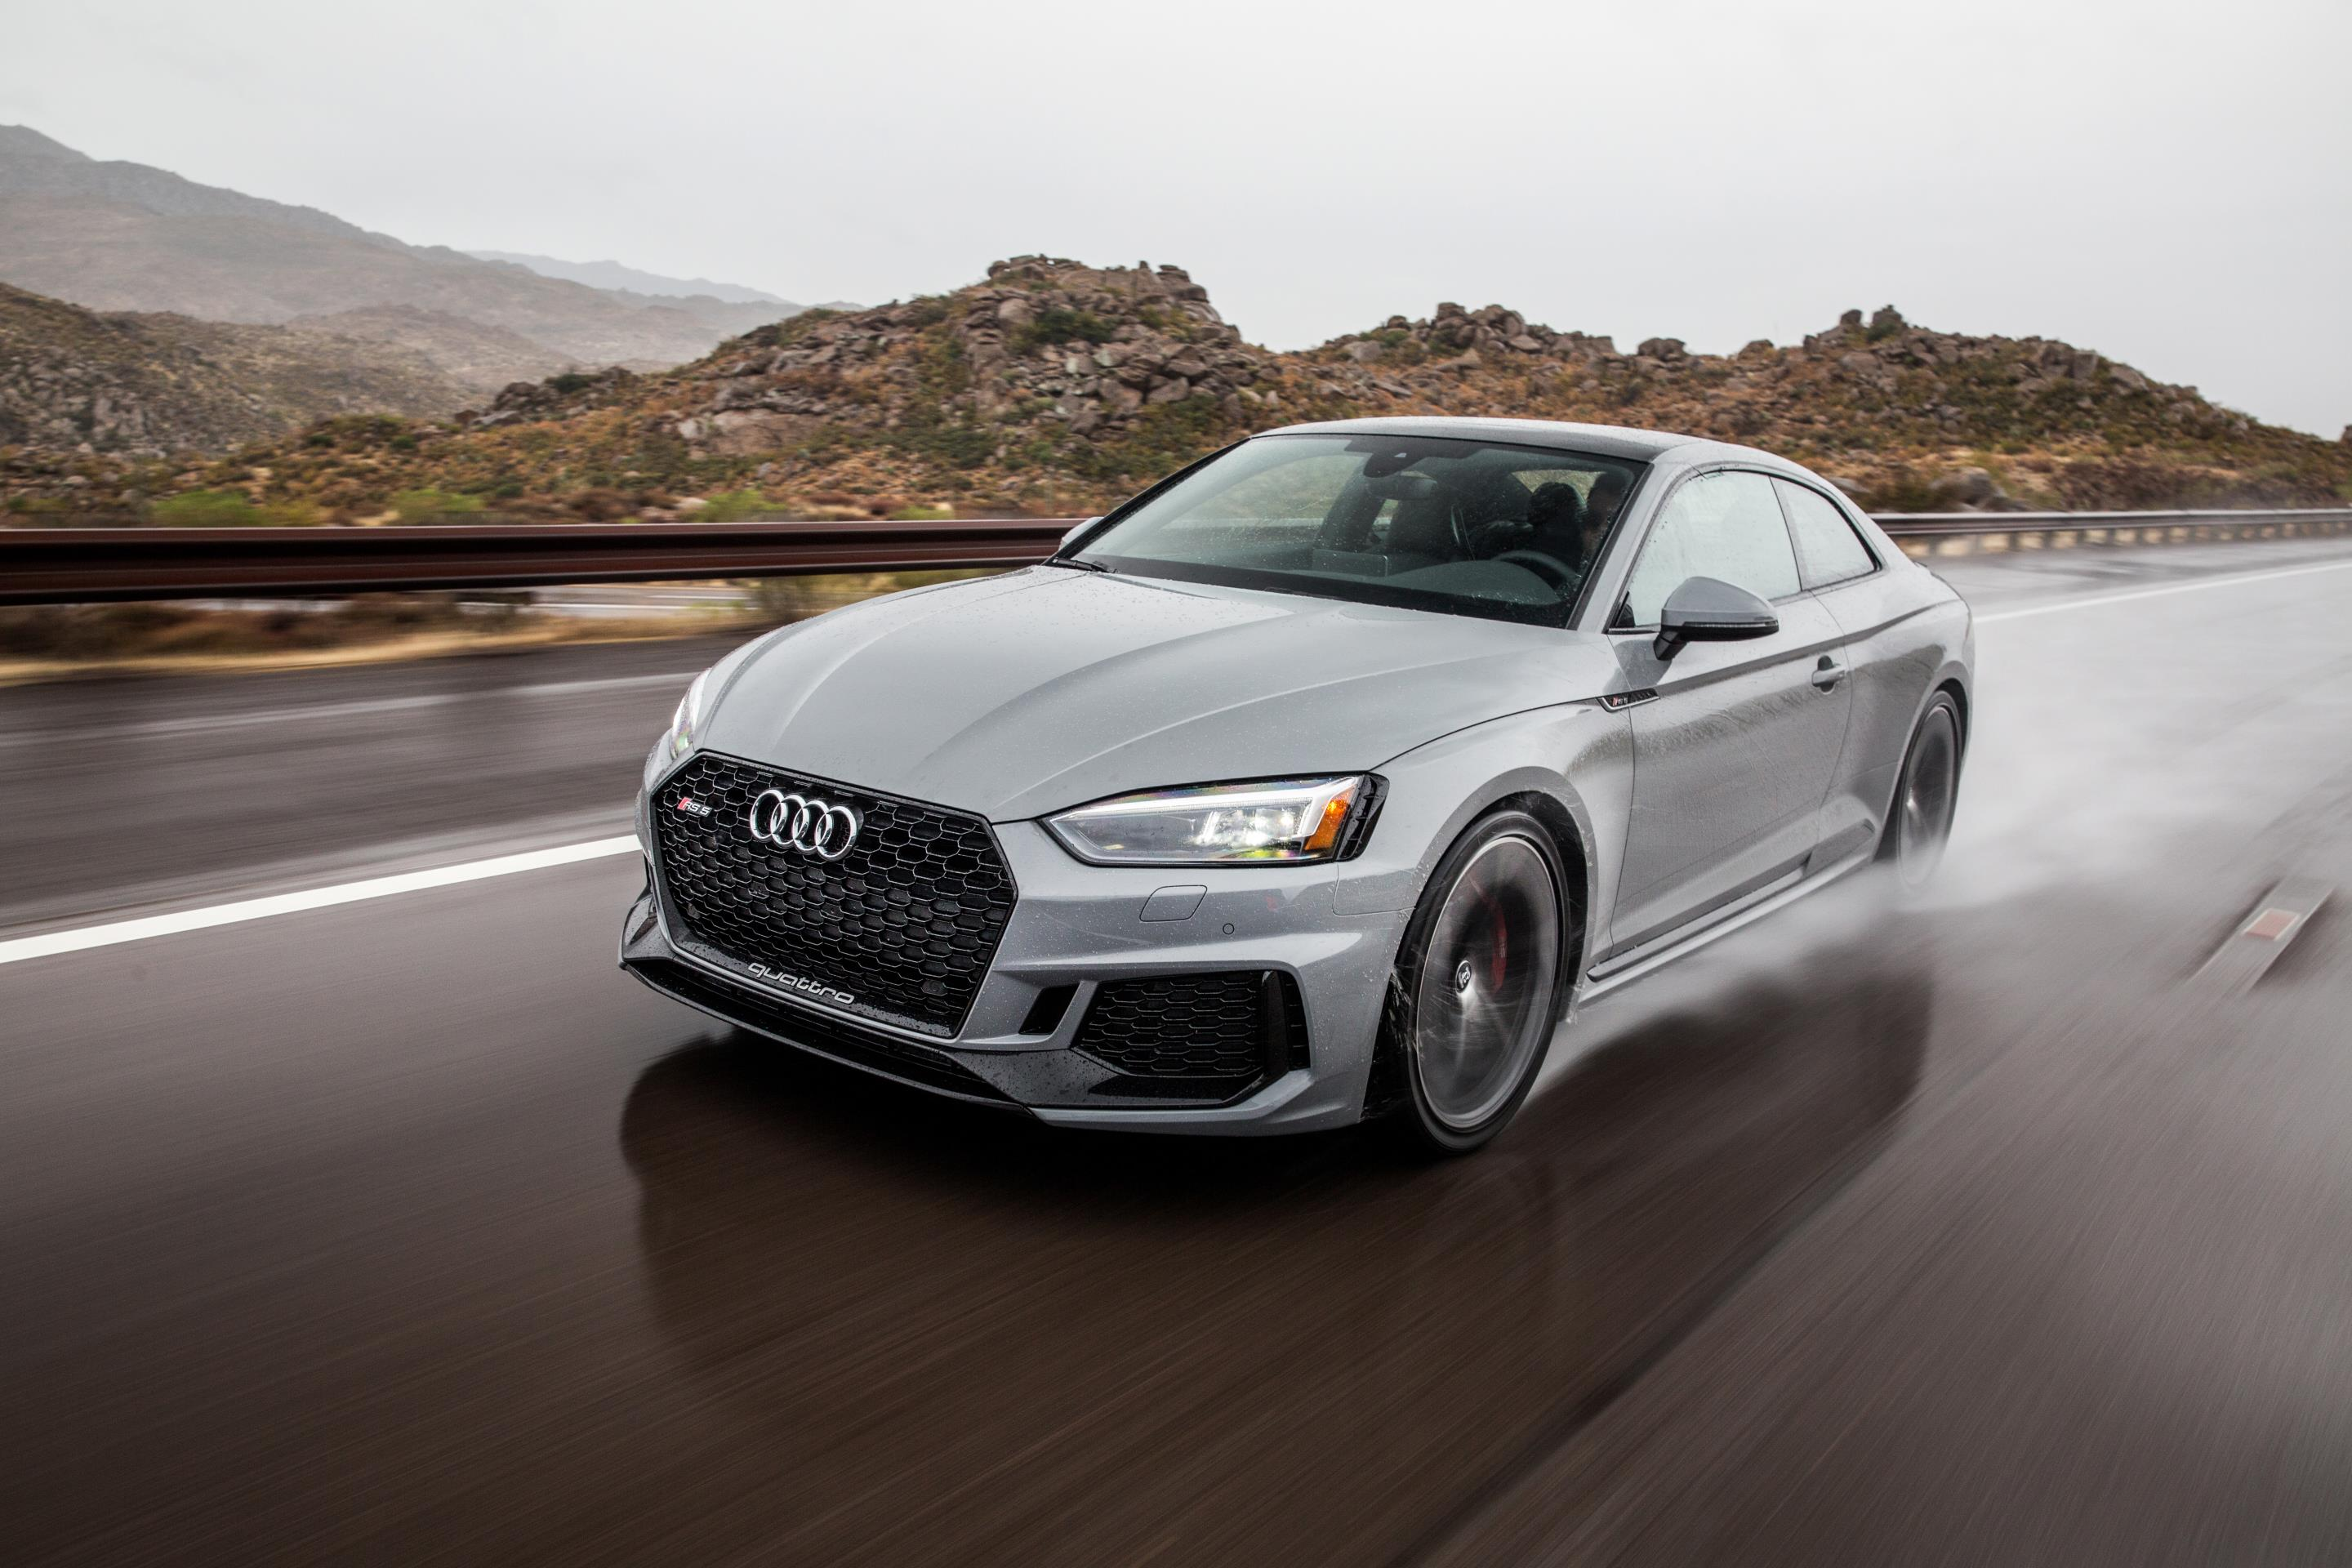 ALL-NEW 2018 AUDI RS 5 COUPE - myAutoWorld.com